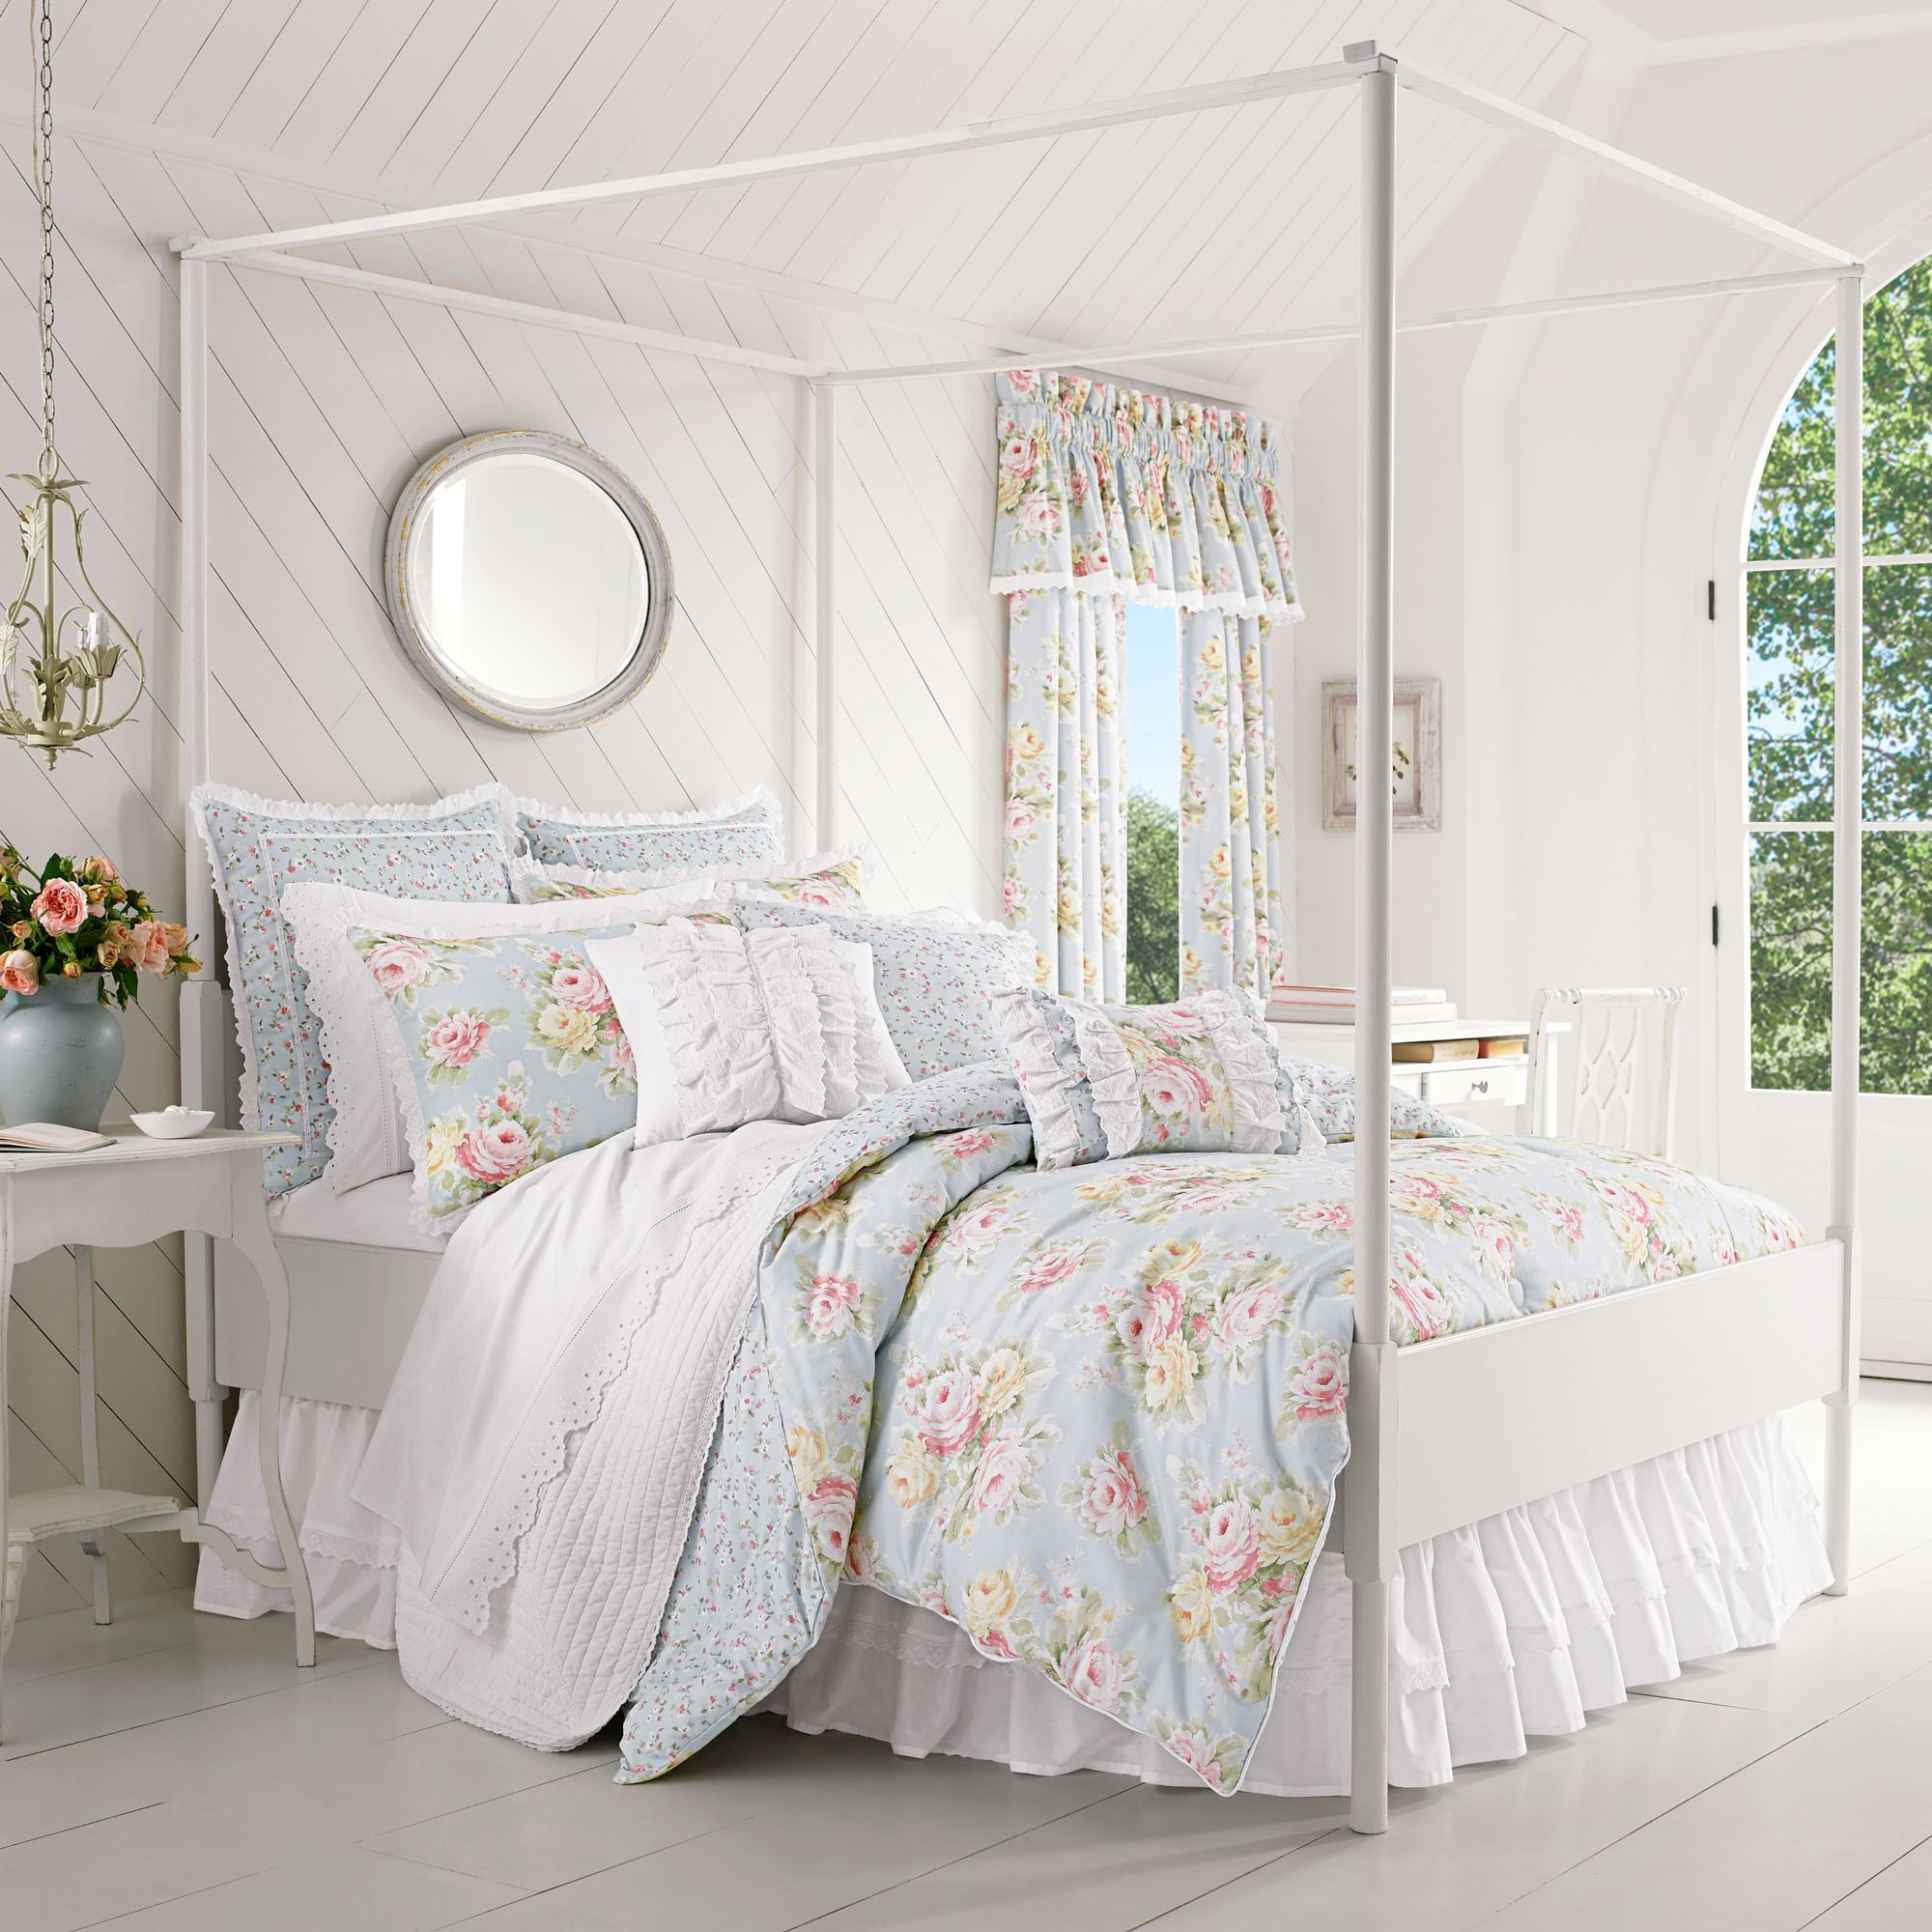 page pleated queen for outfitters brown cotton urban info plain sham size navy covers target black and set grey sets duvet comforter duvets uk kohphiphi green doona ruffle edge hadley full xl ruched blue pink king single white quilt twin lilac cover of pinch ruffled